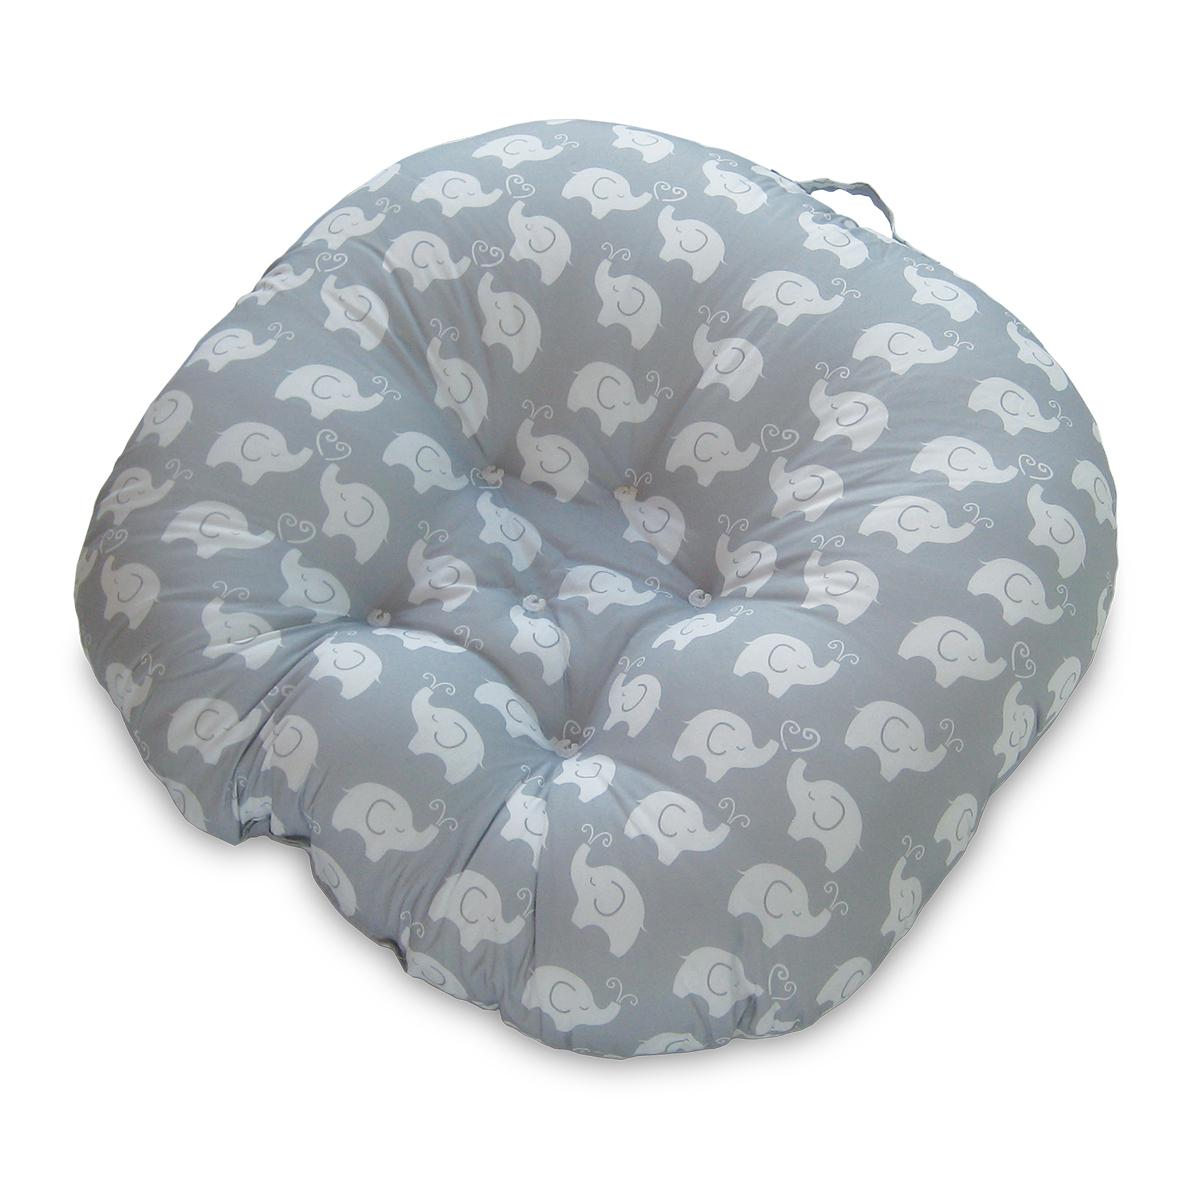 Boppy Newborn Lounger Pillow Elephants Baby Baby - Babies R Us Infant Pillow